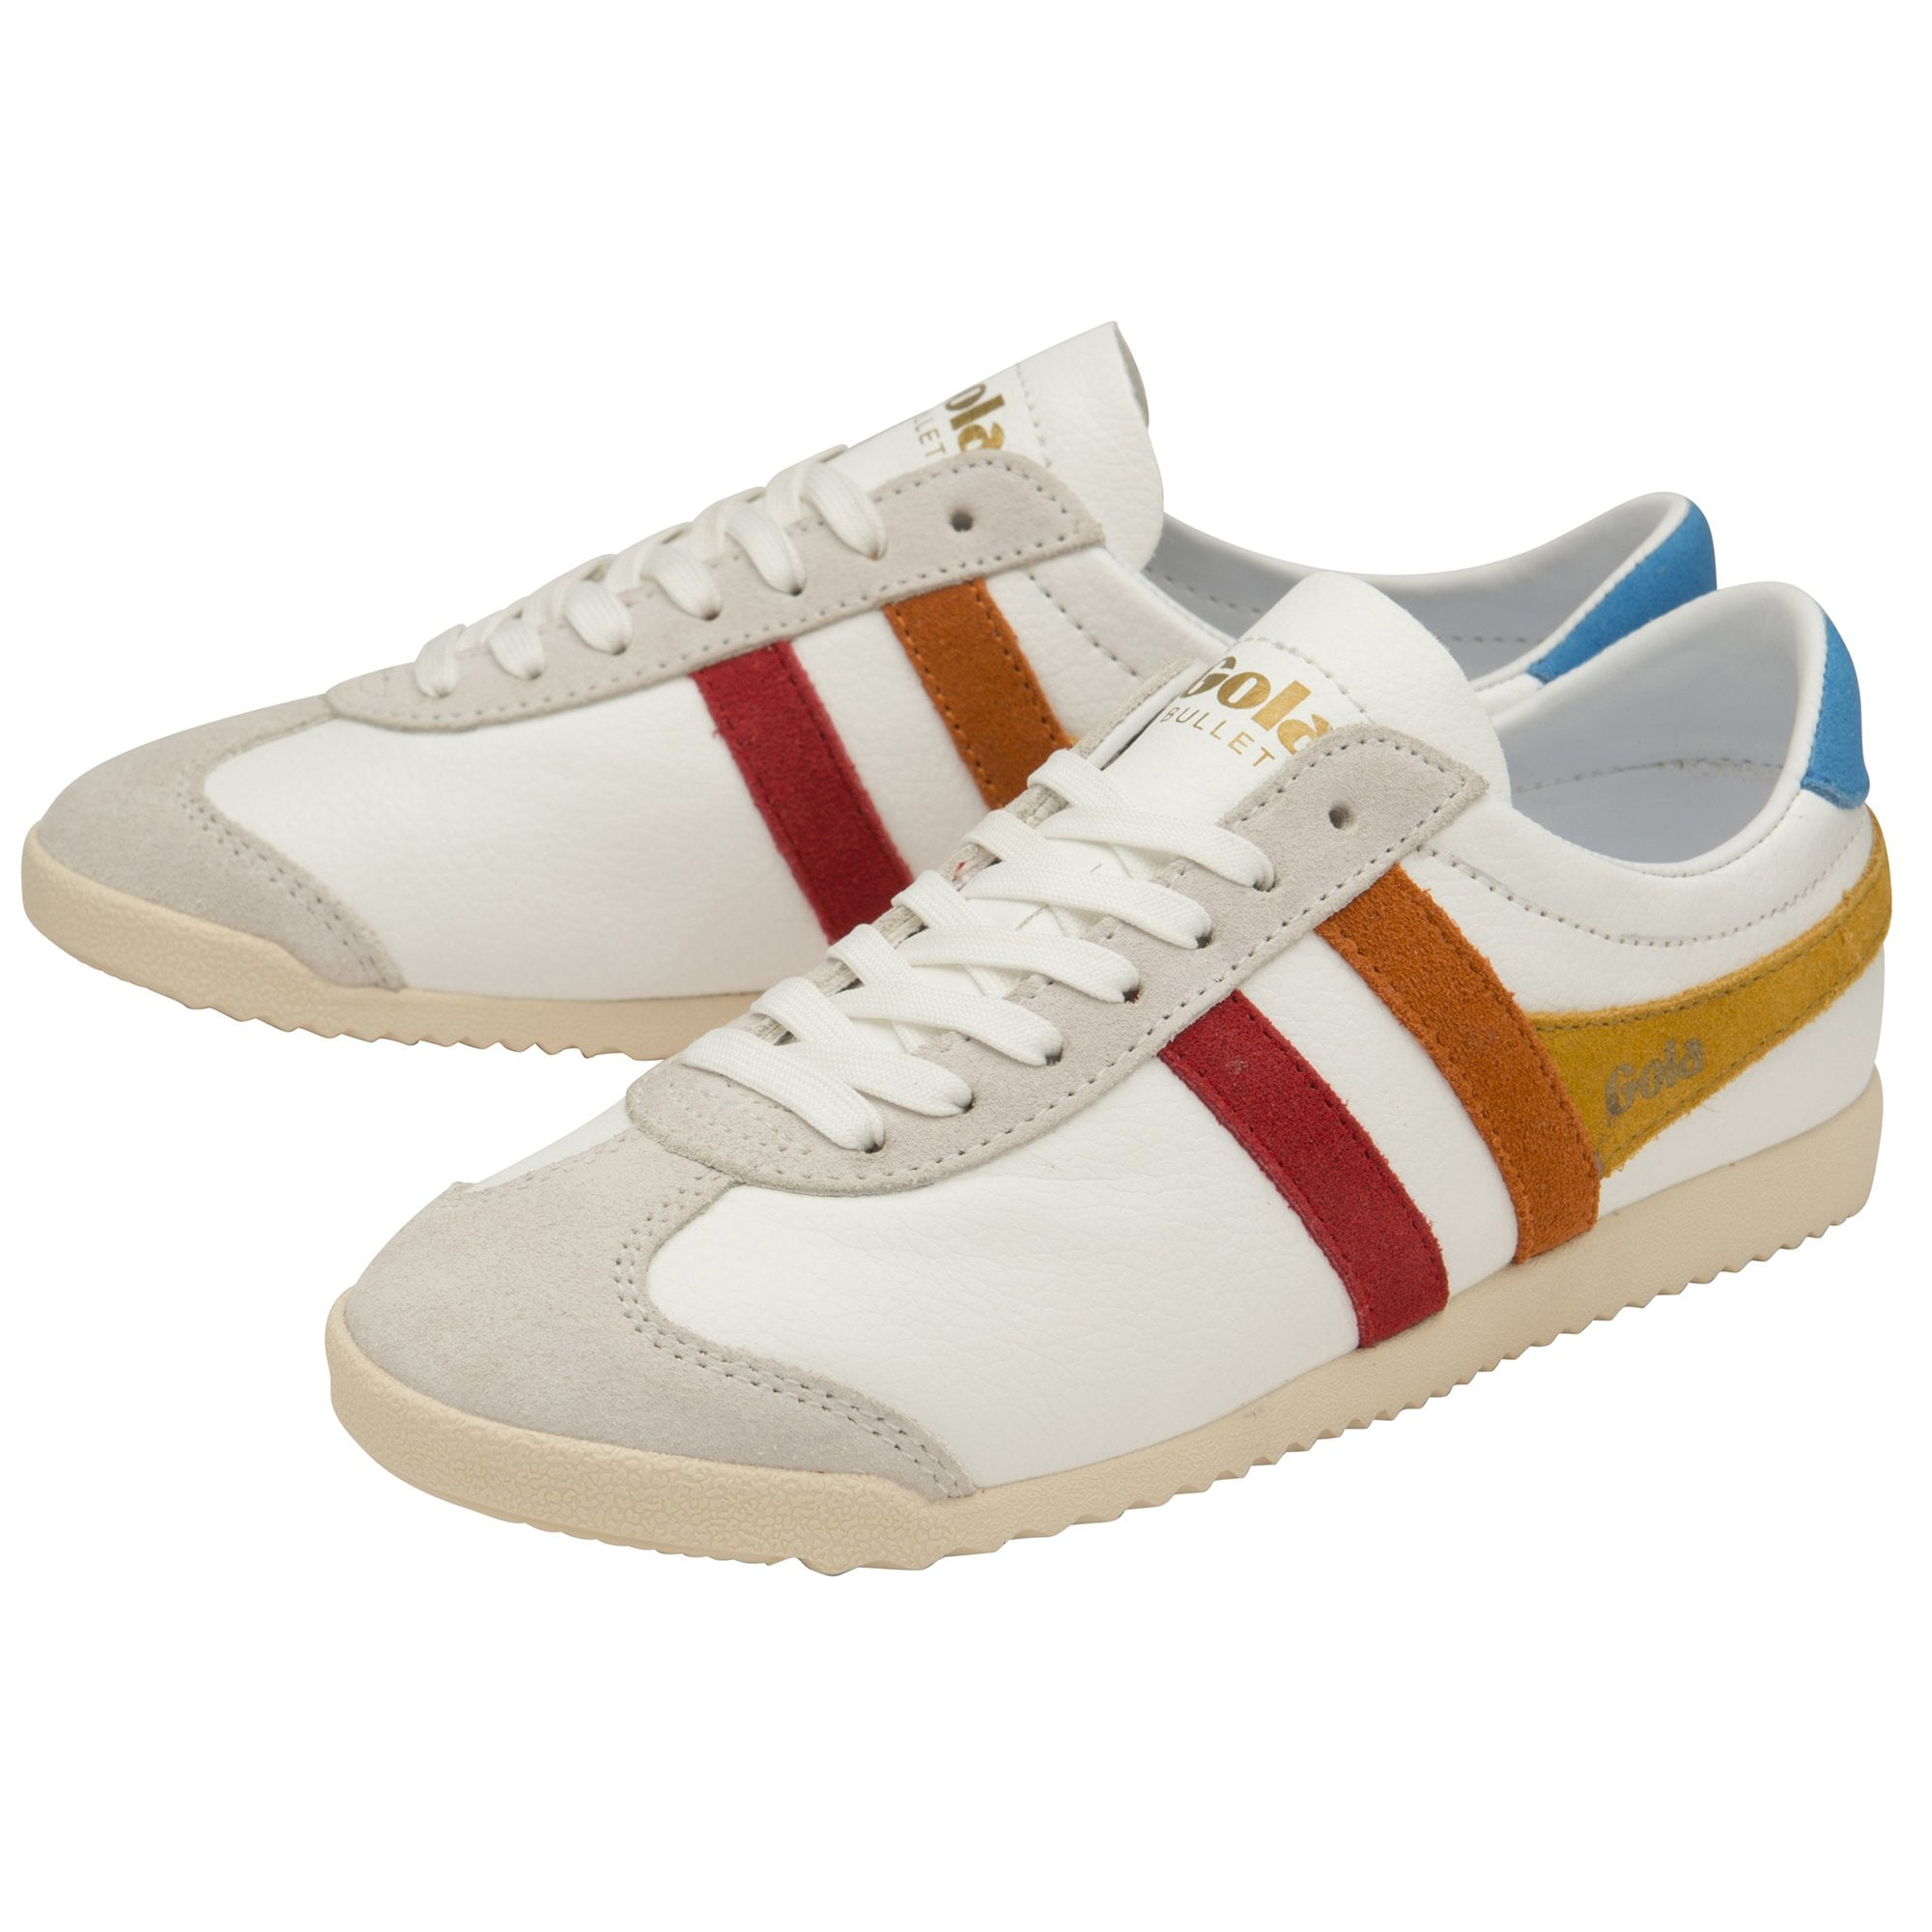 Buy Gola womens Bullet Trident trainers